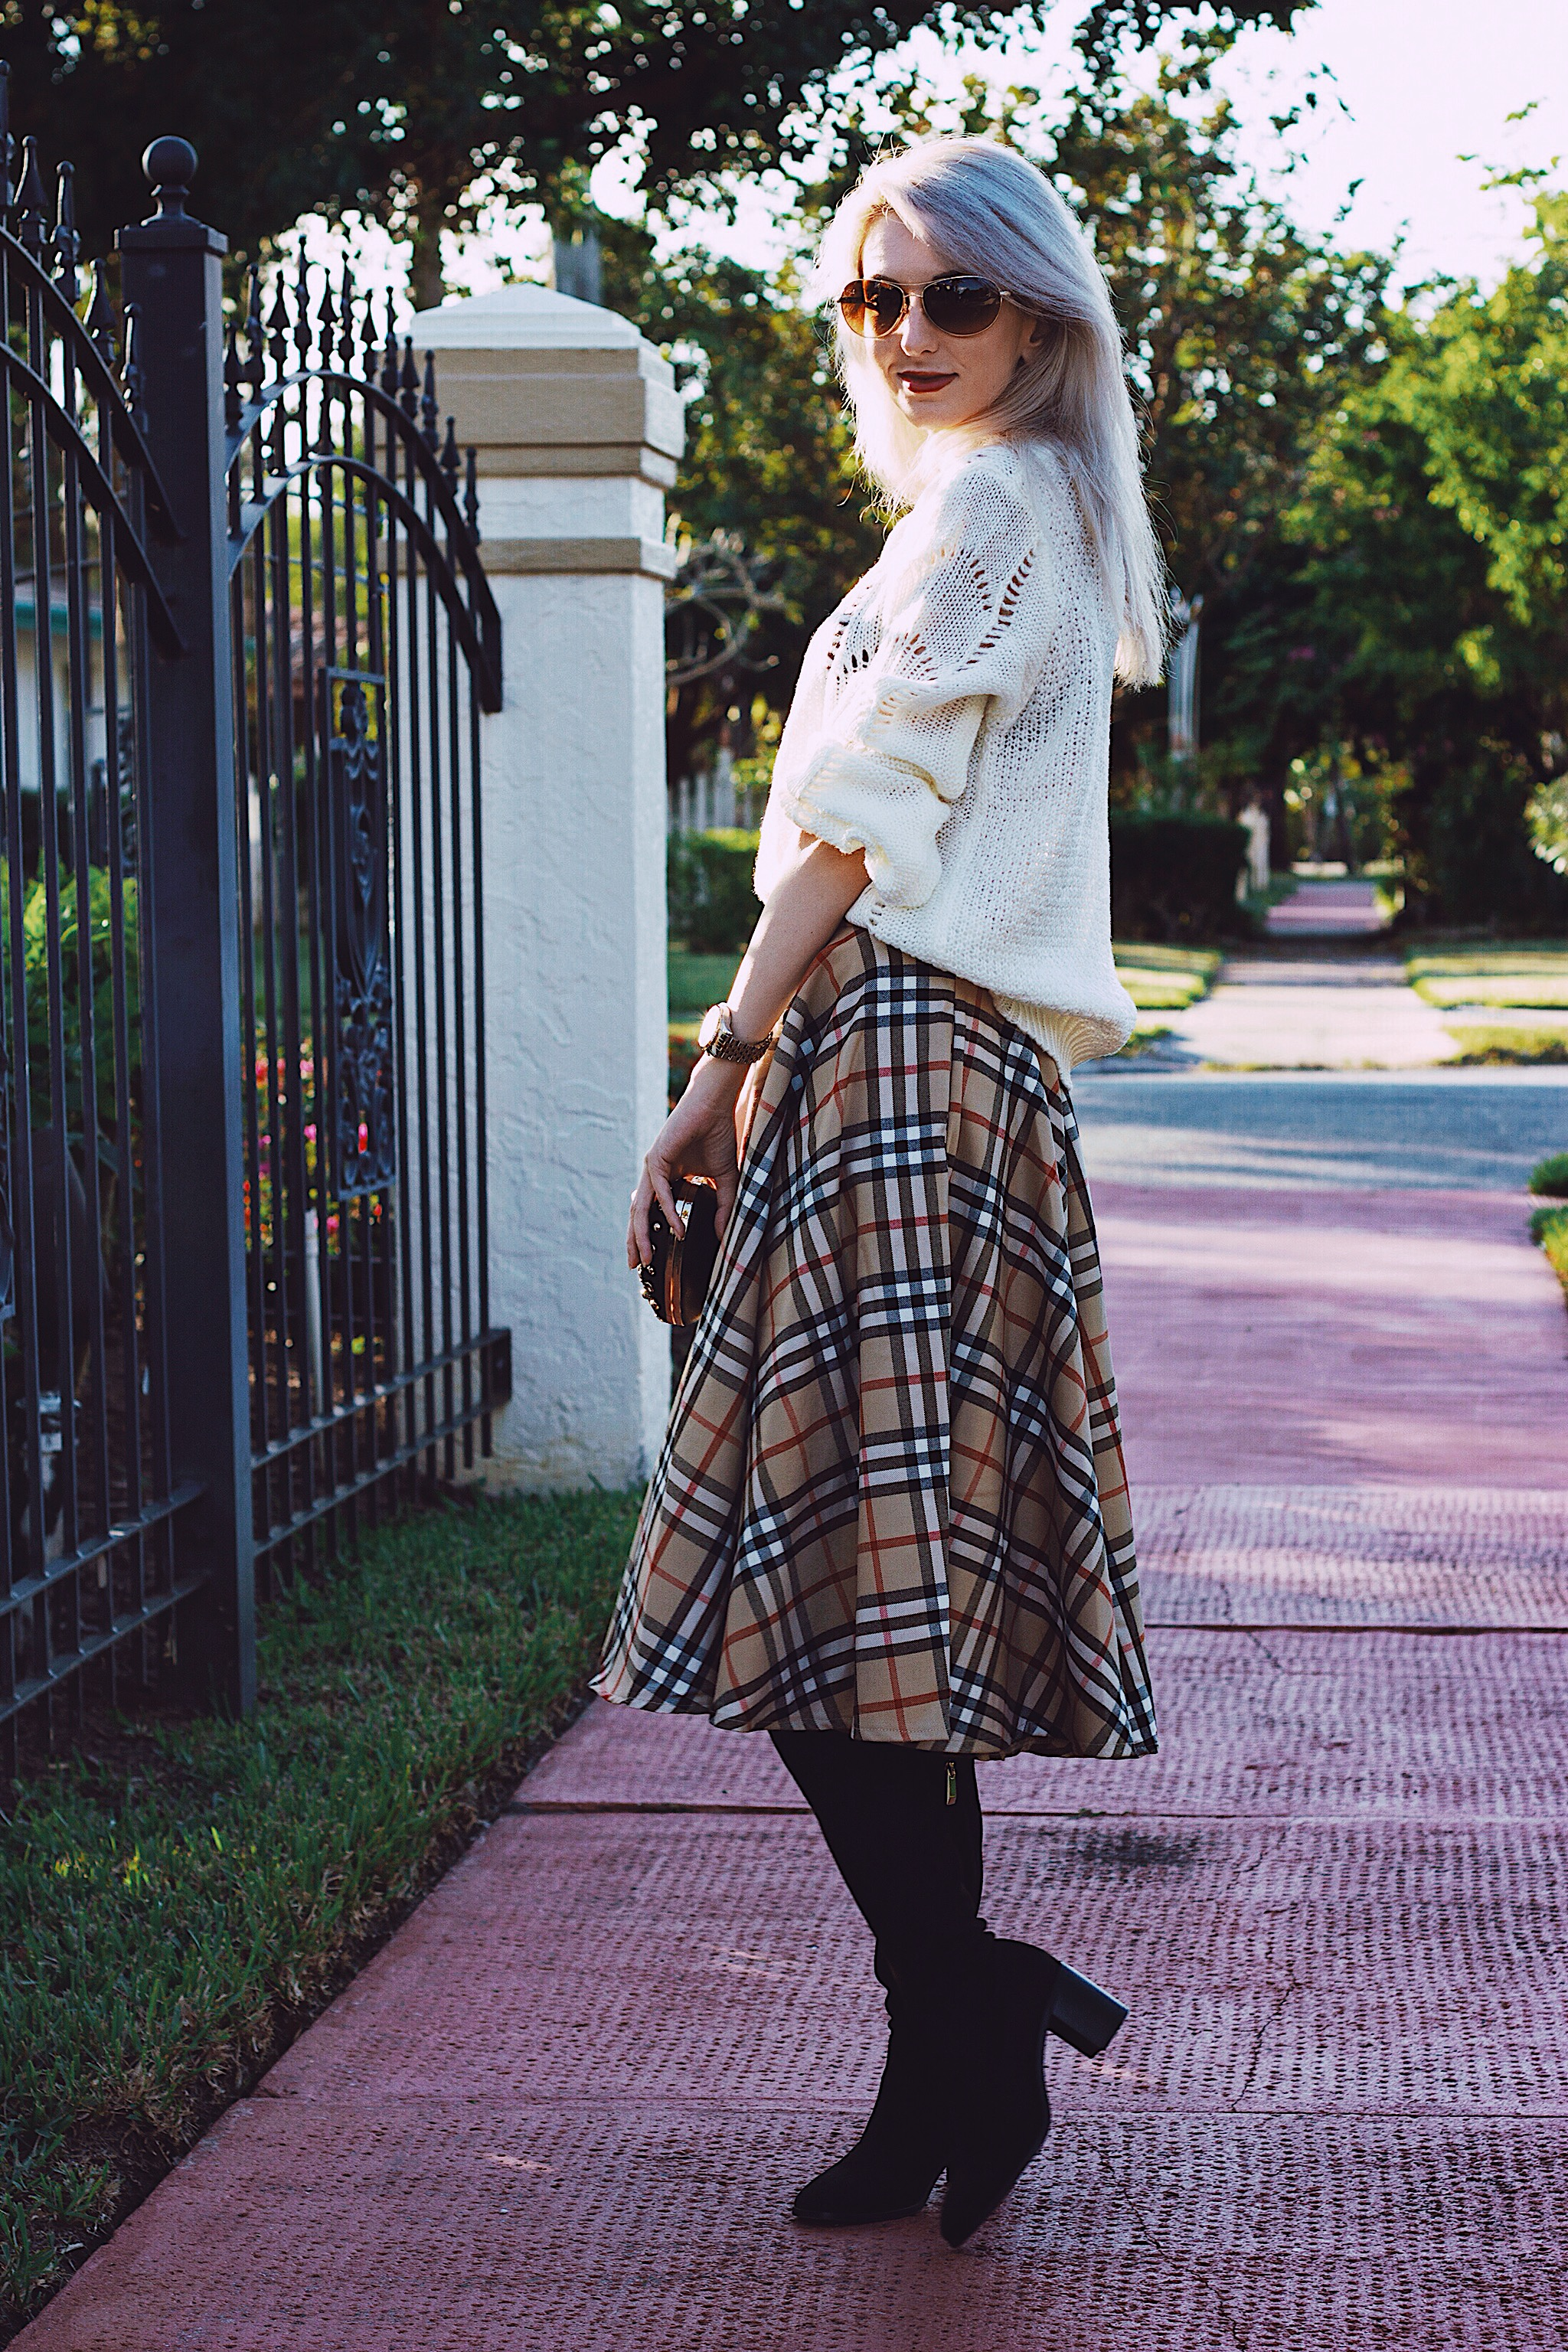 Fashion Fears Midi Skirt Style Unsettled